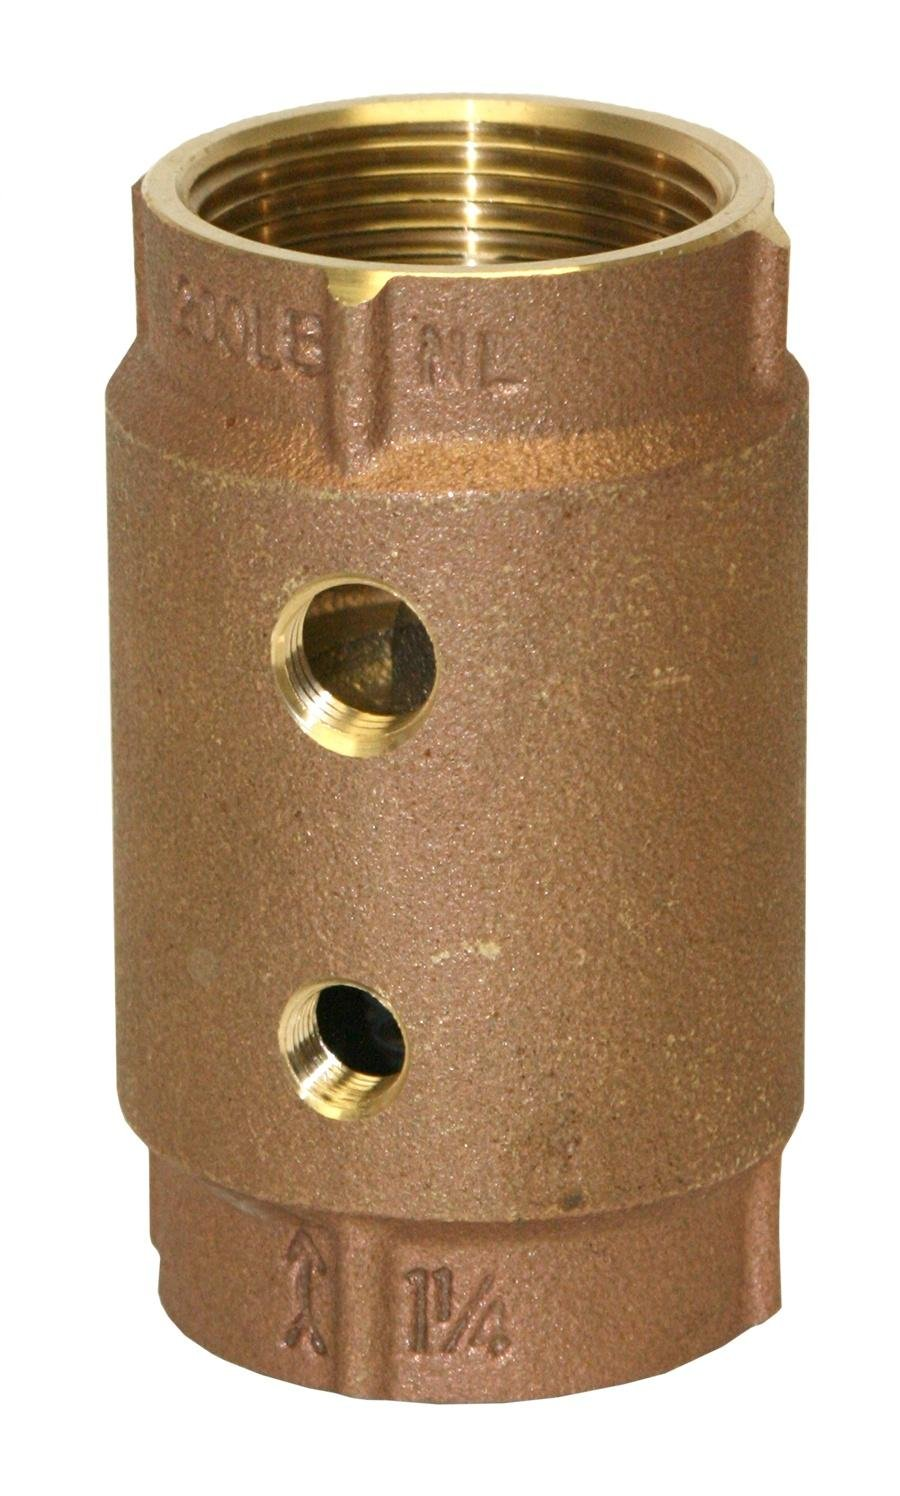 "Merrill MFG CVRTNL1252 Side Tapped No Lead Brass Check Valve, No Spin Poppet, 2 Tapping's, 1-1/4"" Pipe Size, 3.63"""